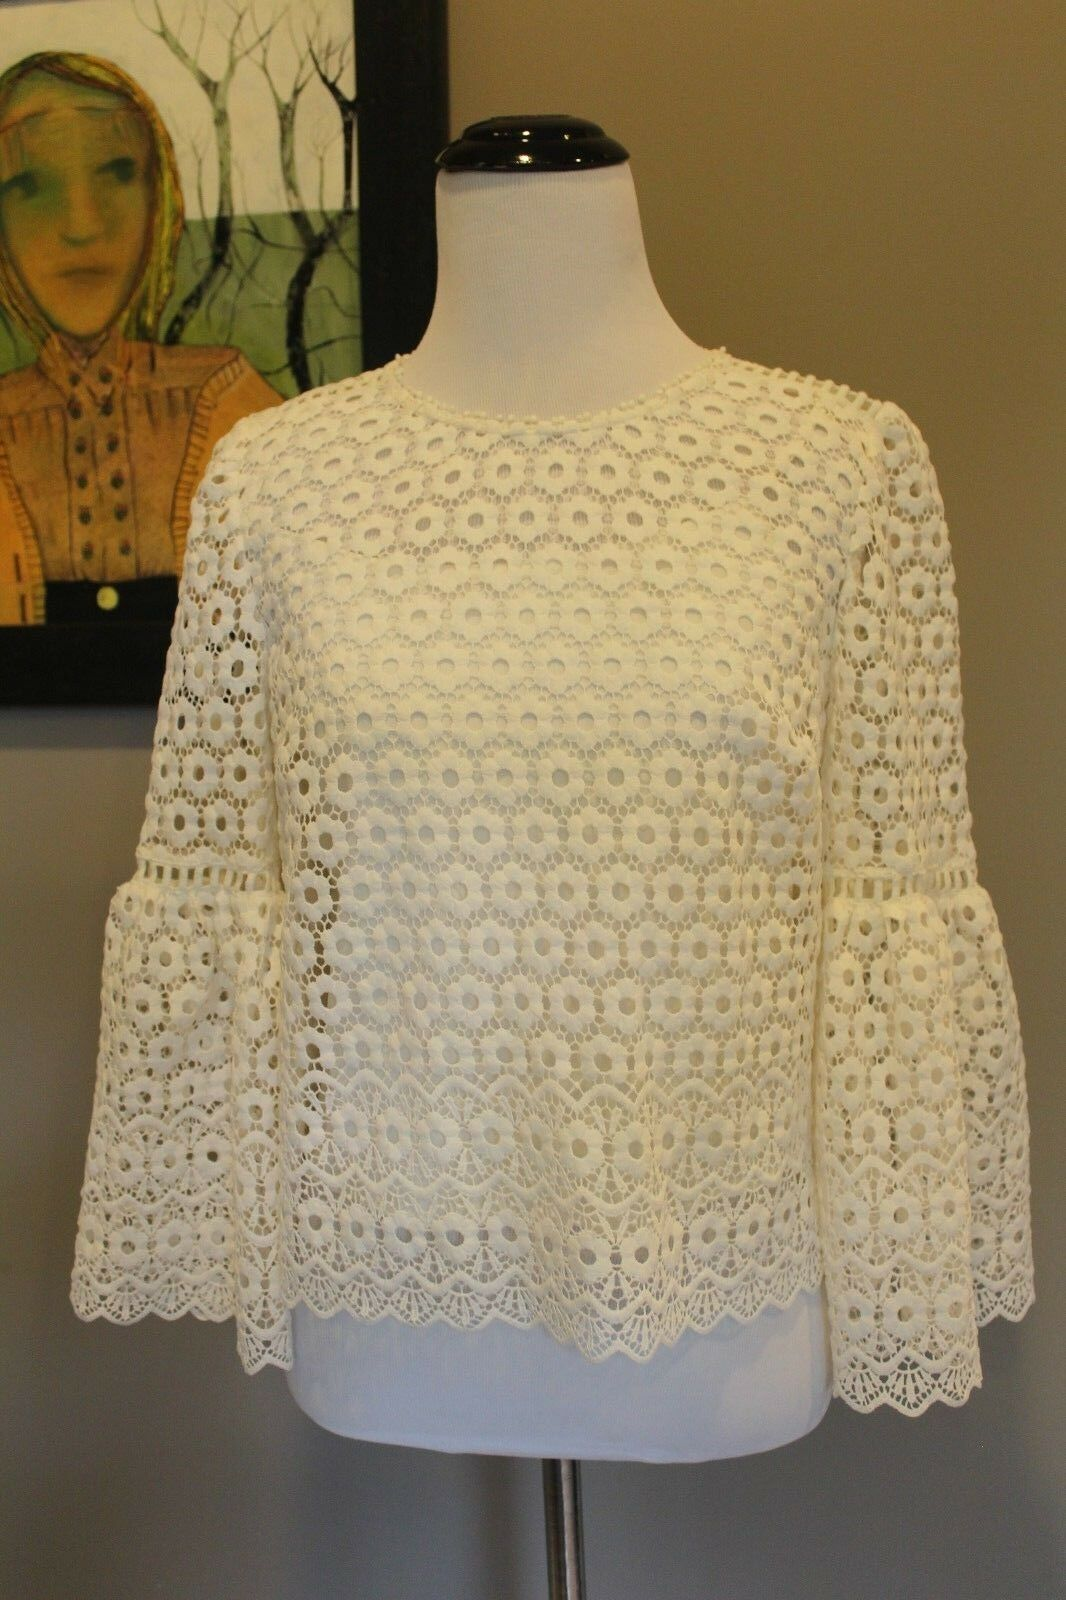 NEW J Crew Daisylace Bell Sleeve Top in Ivory Sz 0 XS G9911 Sold Out Online